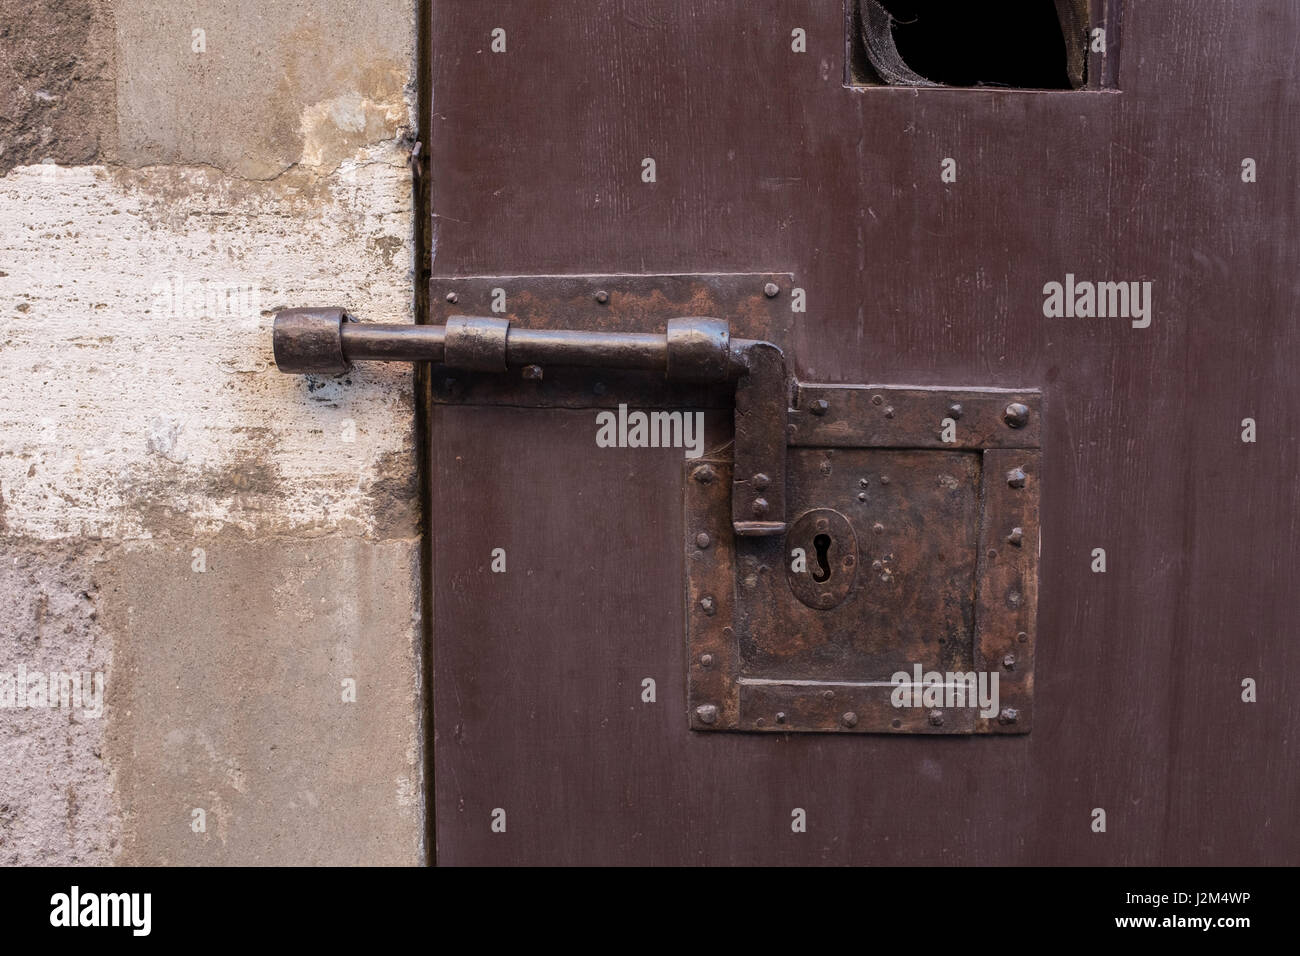 Bolted door & Bolted door Stock Photo: 139355154 - Alamy